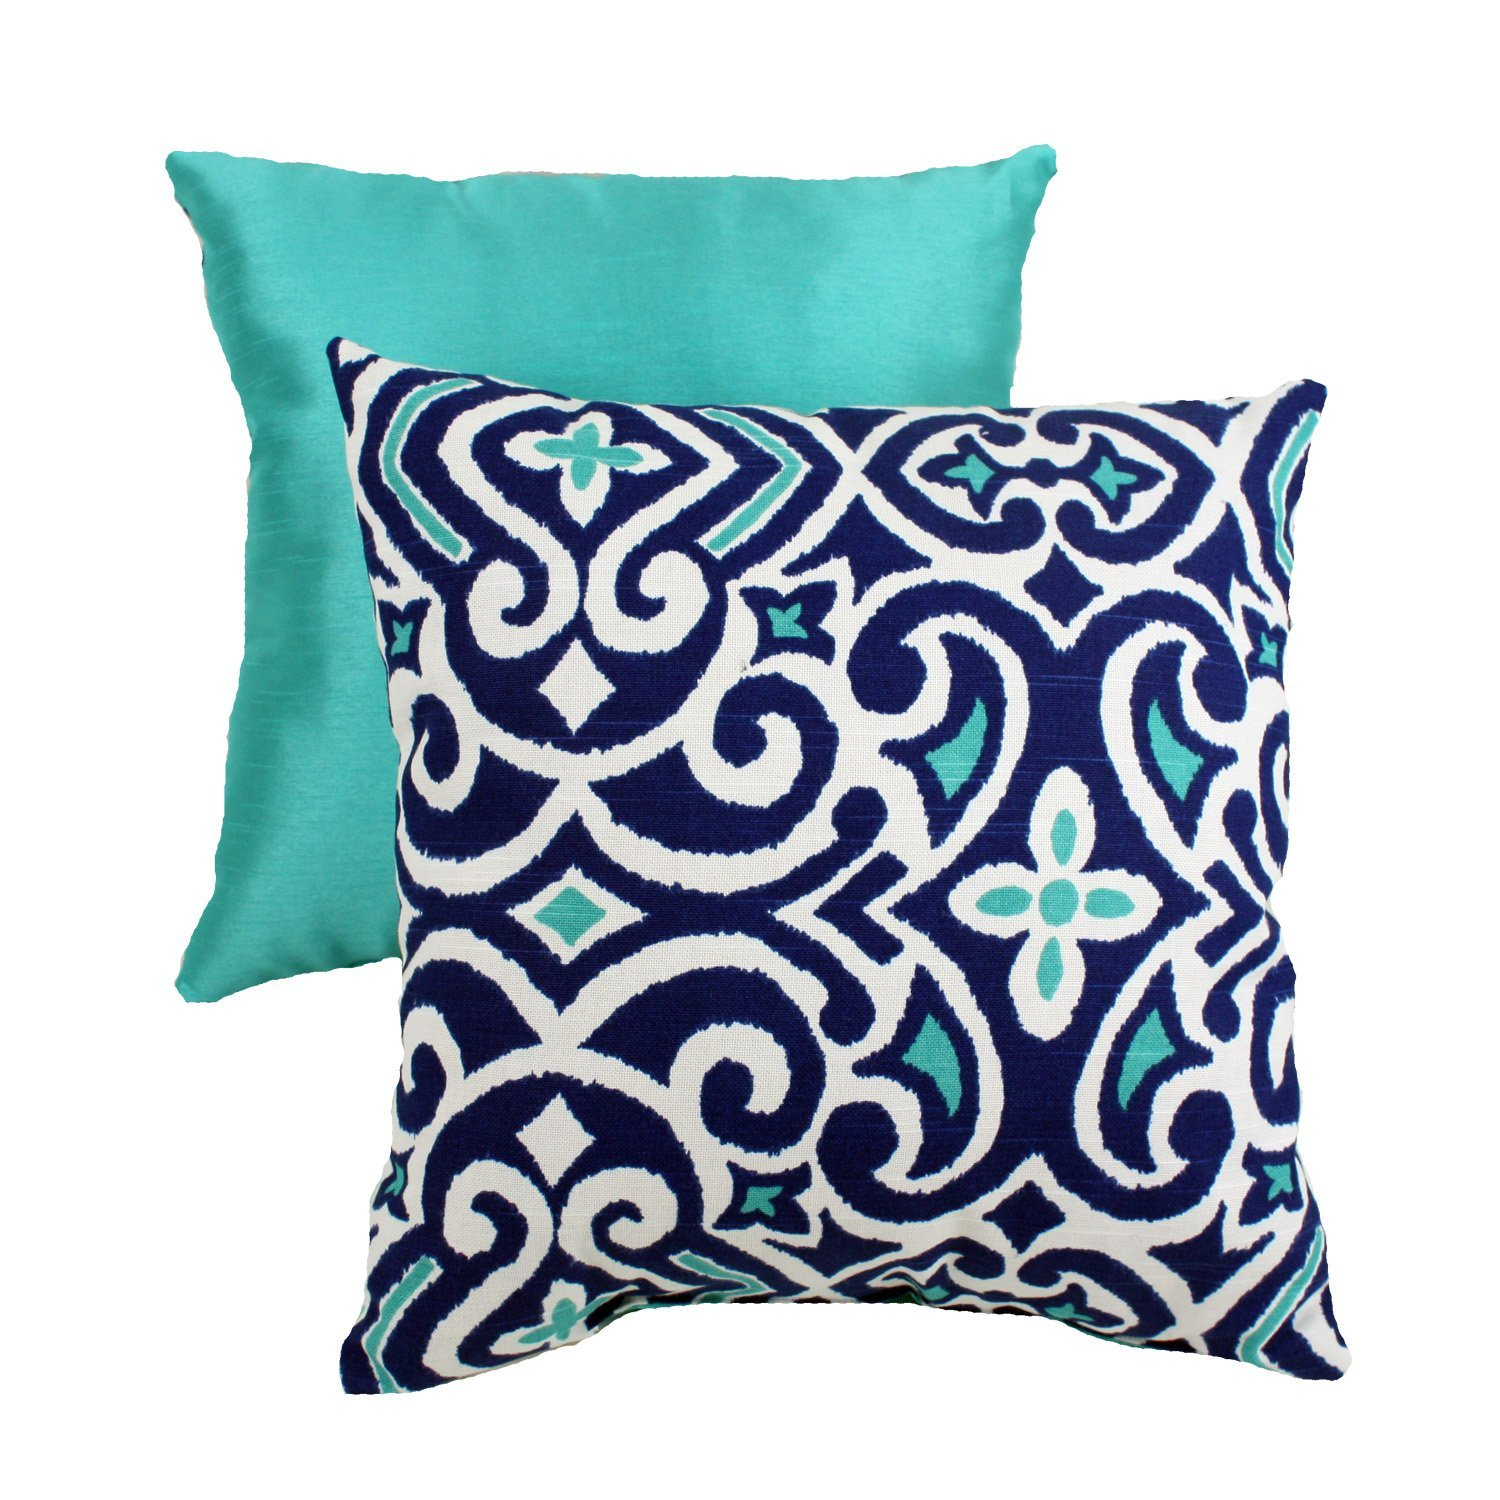 Cheap throw pillows for couch - Simple Throw Pillows U Luxury Interior Specialists With Throw Pillows For Sofa